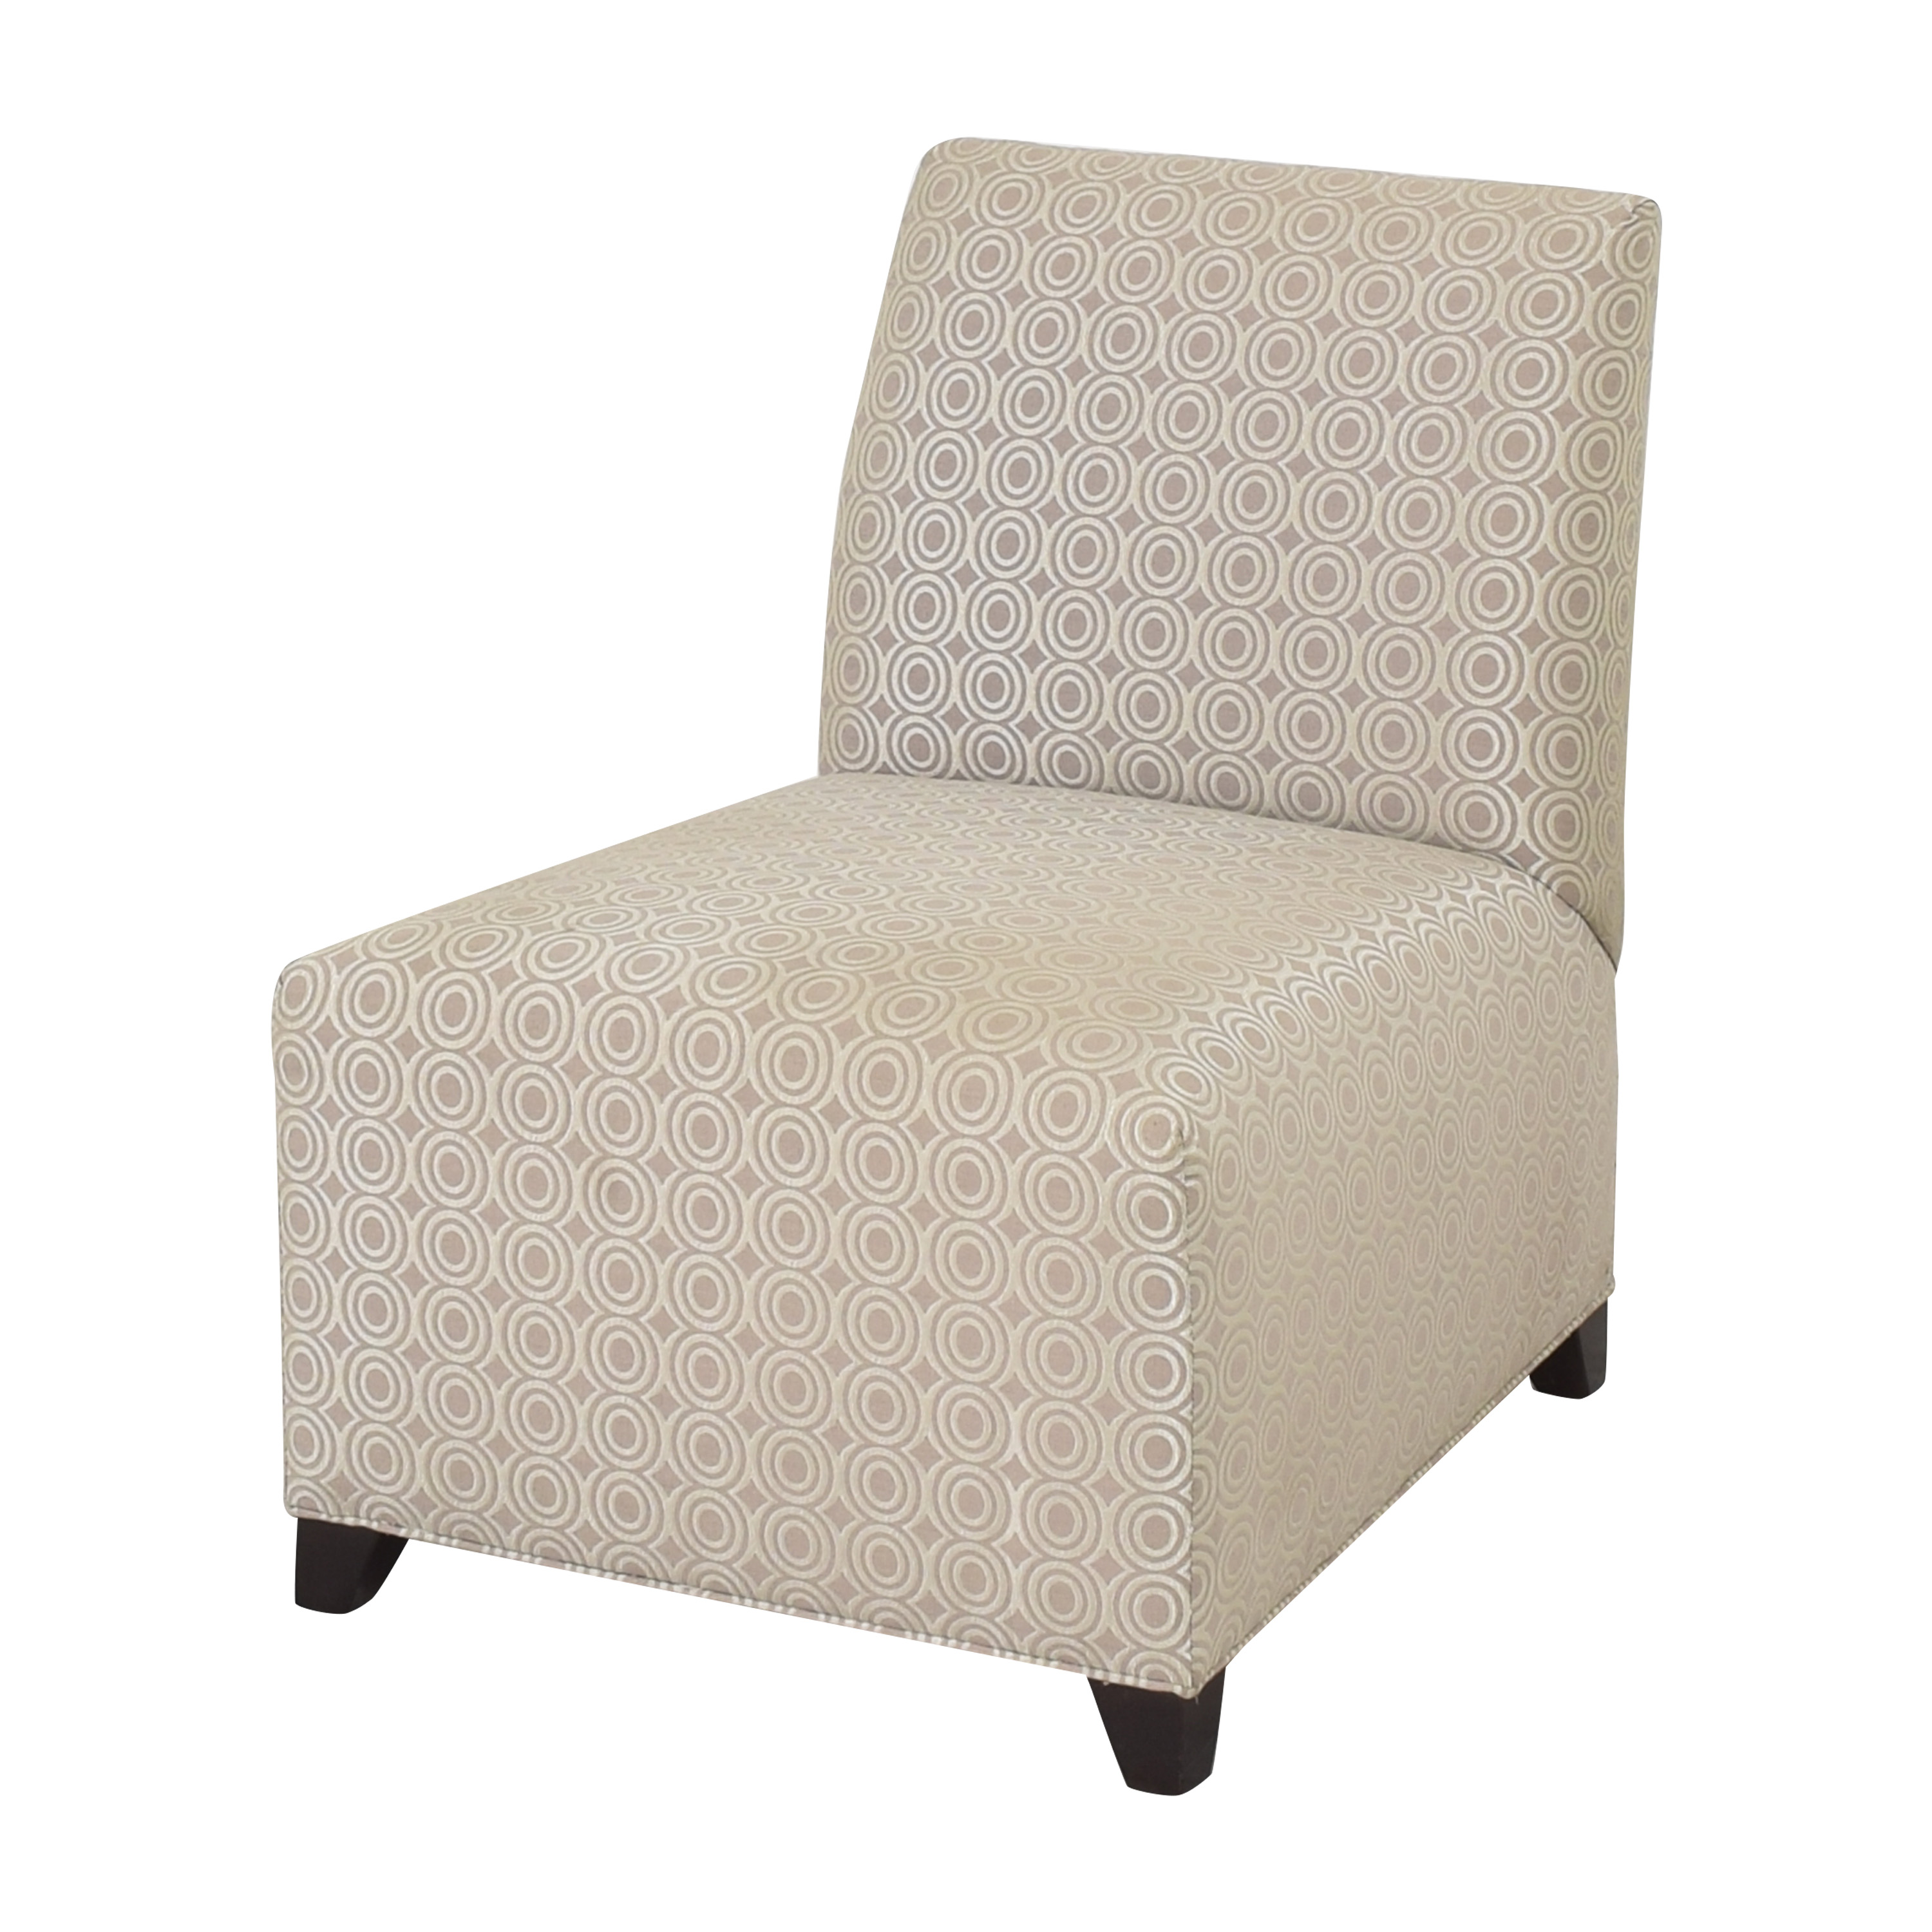 Ethan Allen Slipper Accent Chair with Ottoman / Accent Chairs